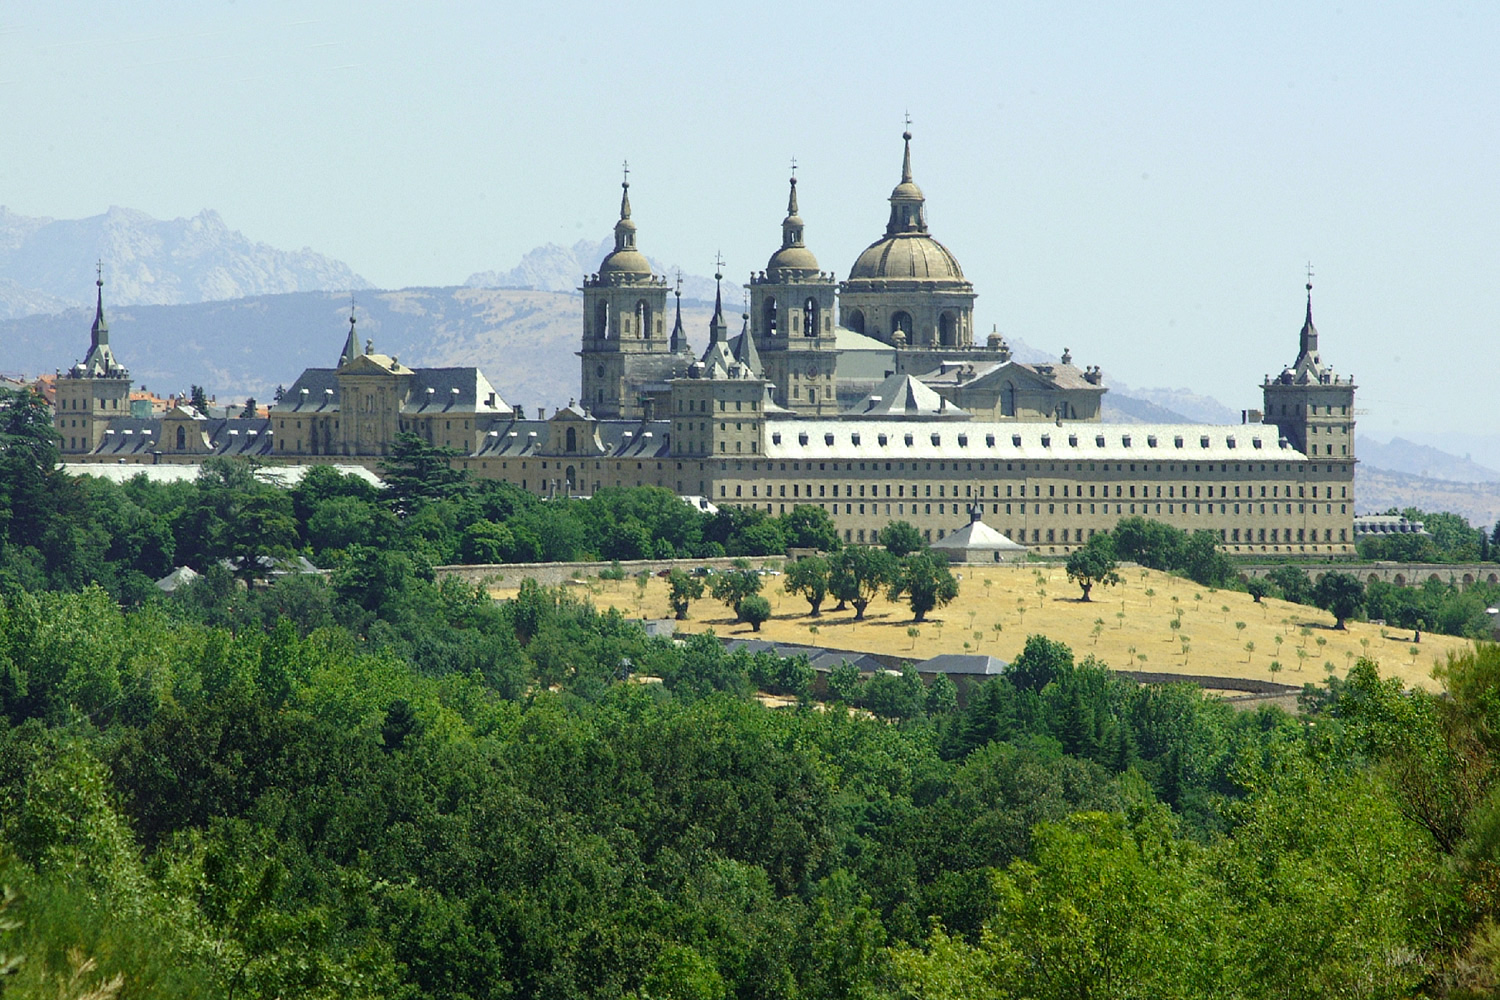 A tour around Las Rozas, San Lorenzo de El Escorial, Guadarrama, Navacerrada and Manzanares El Real